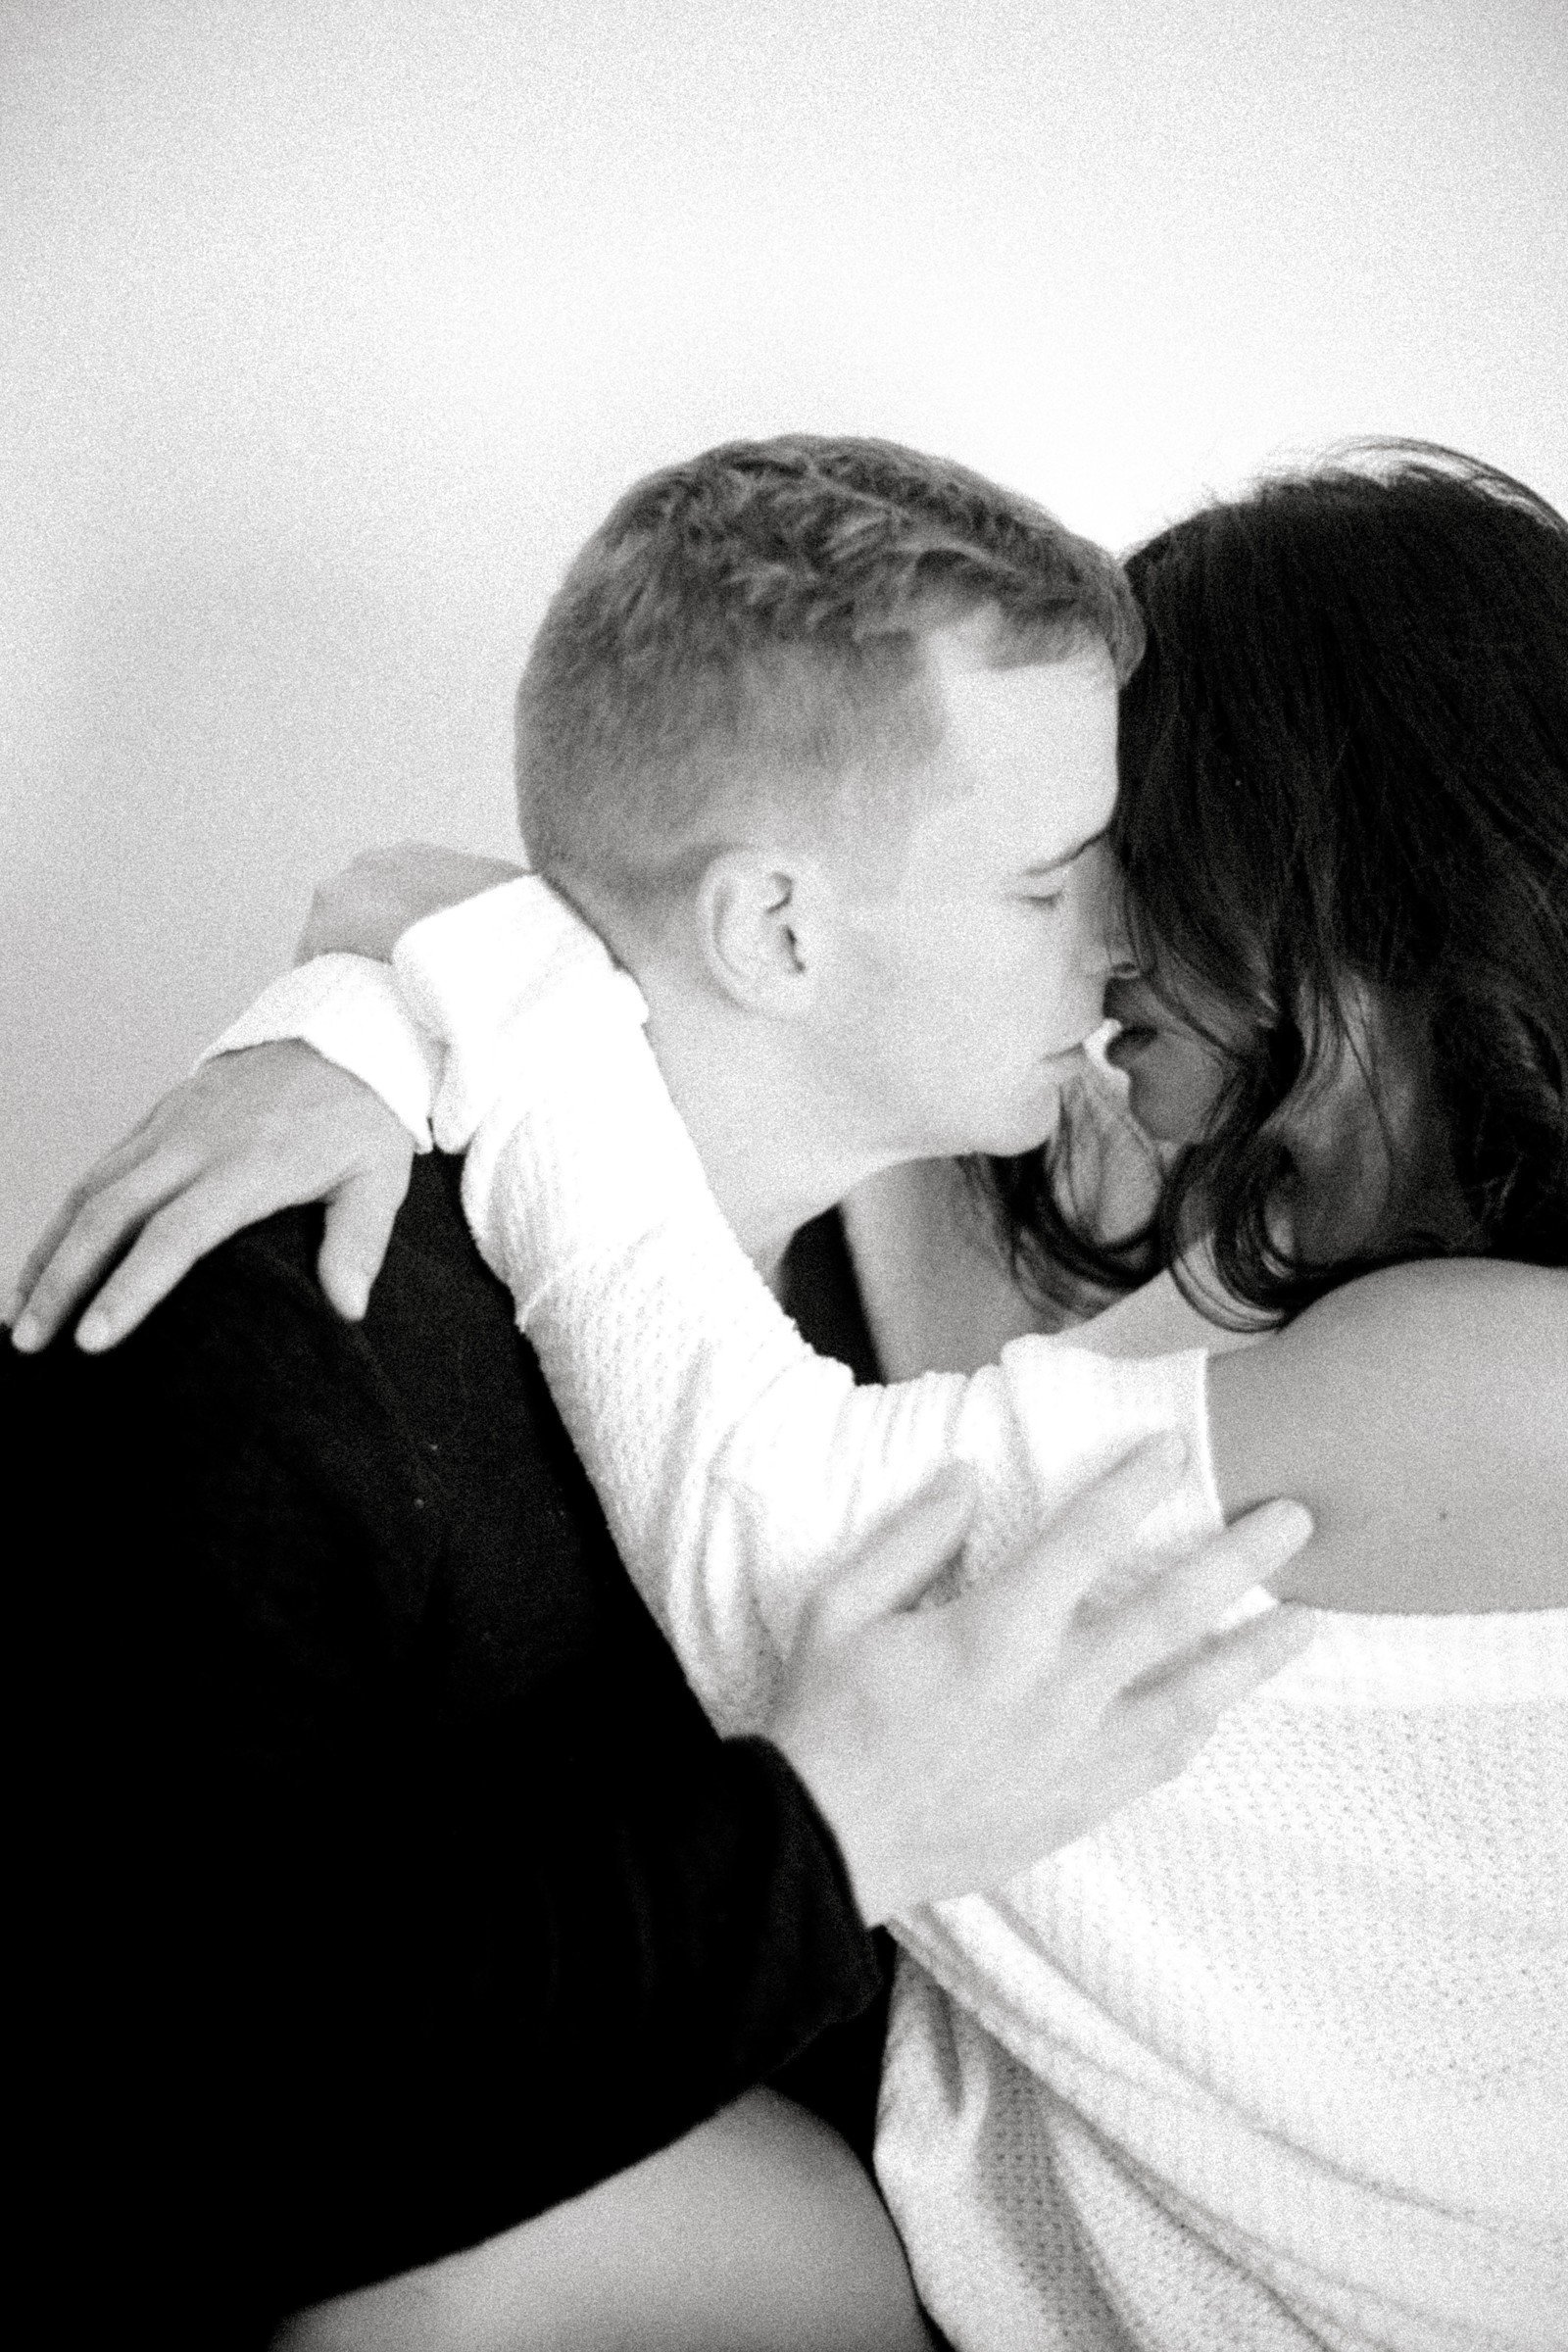 M&M Romantic Playful Interracial Couples Boudoir Photos Norfolk VA Beach Yours Truly Portraiture-12